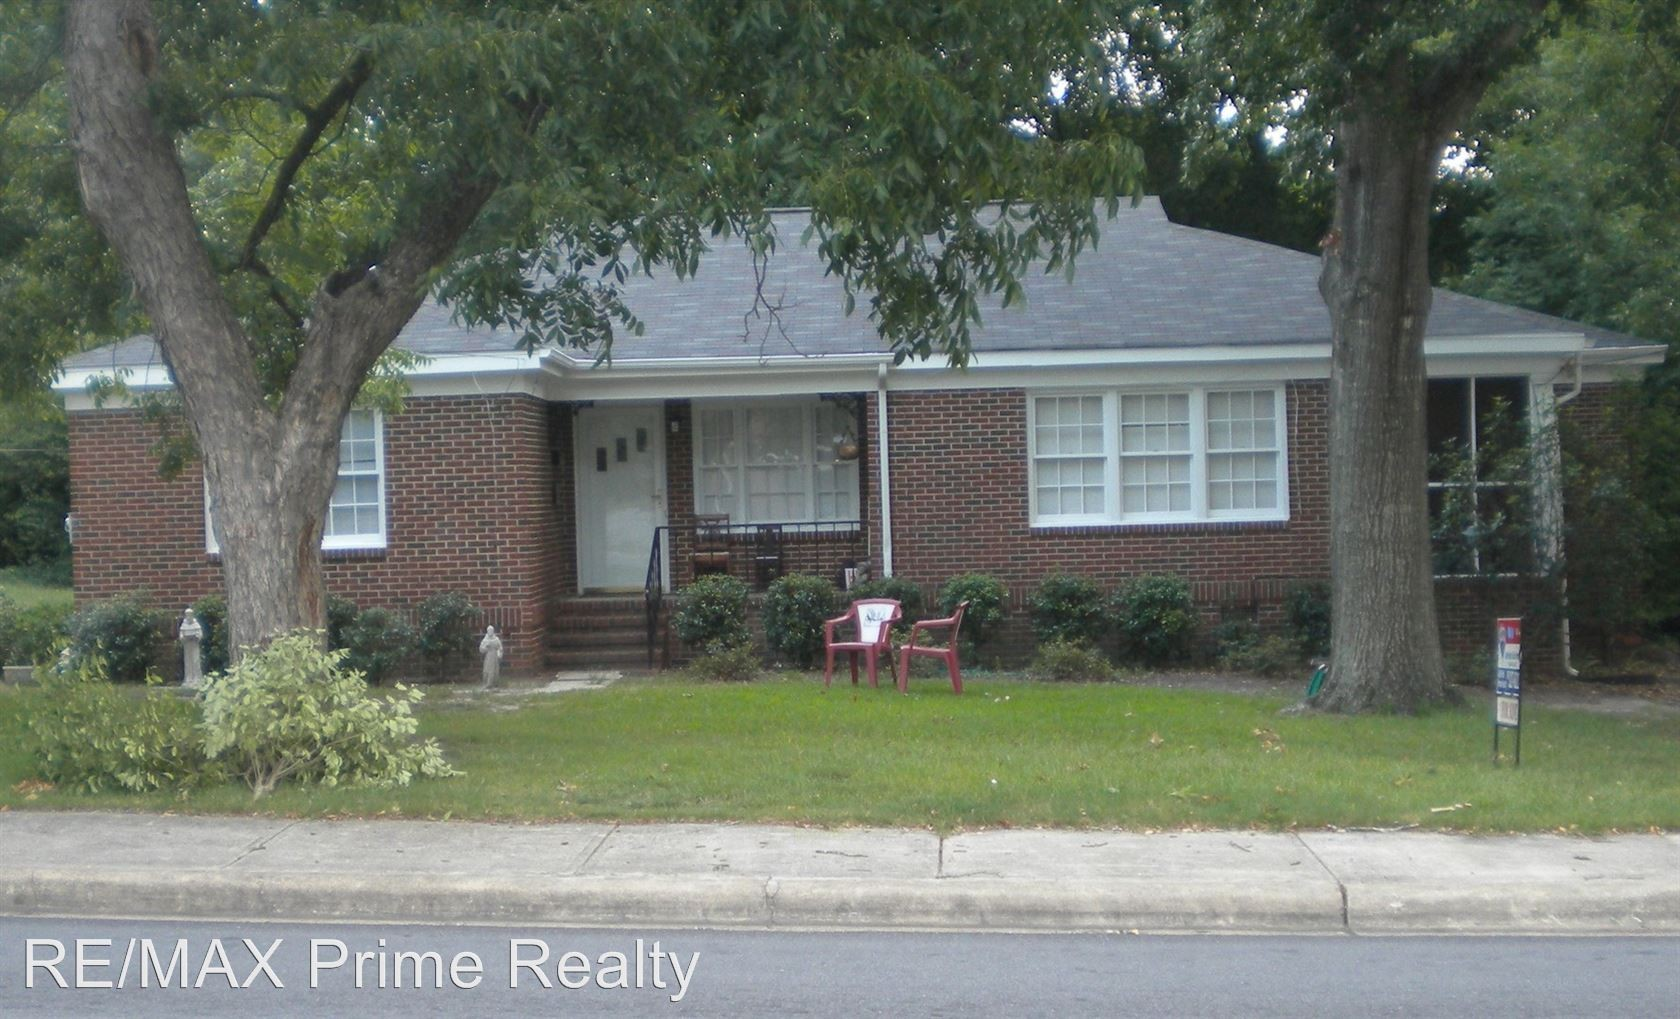 4104 armour ave b columbus ga 31904 1 bedroom house for rent for 500 month zumper Cheap 1 bedroom apartments in columbus ohio